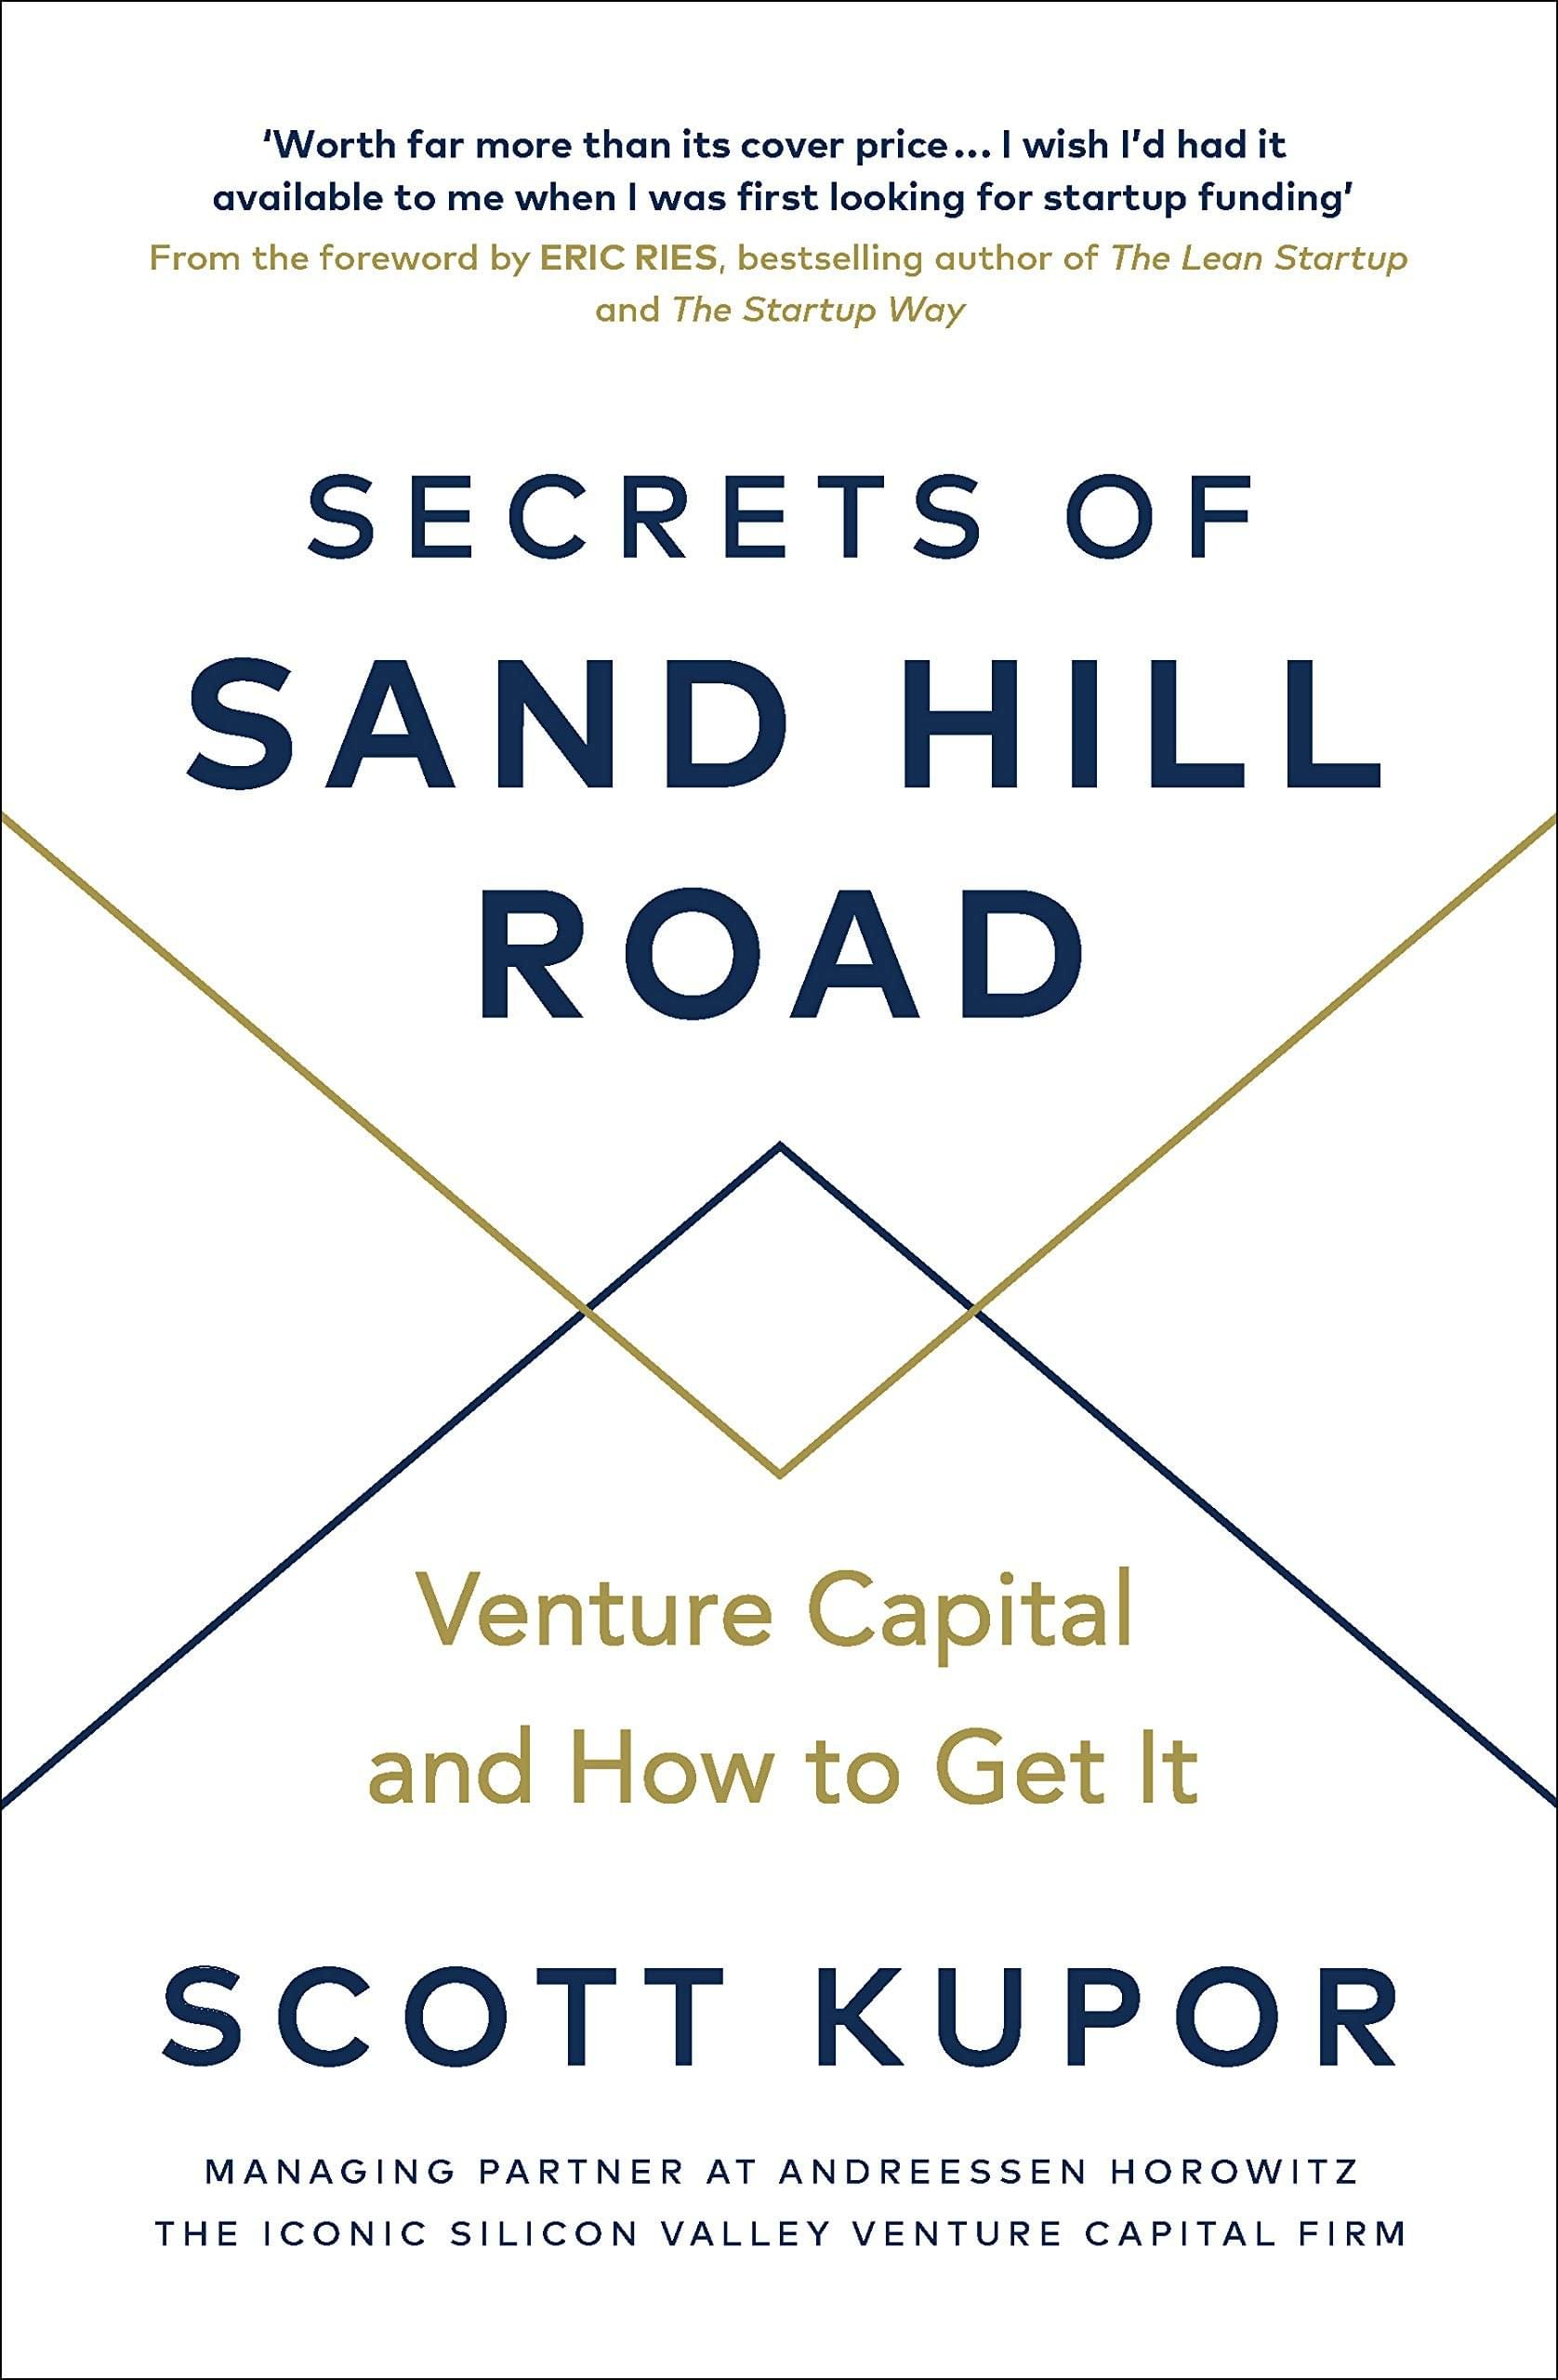 The secret of sand hill road